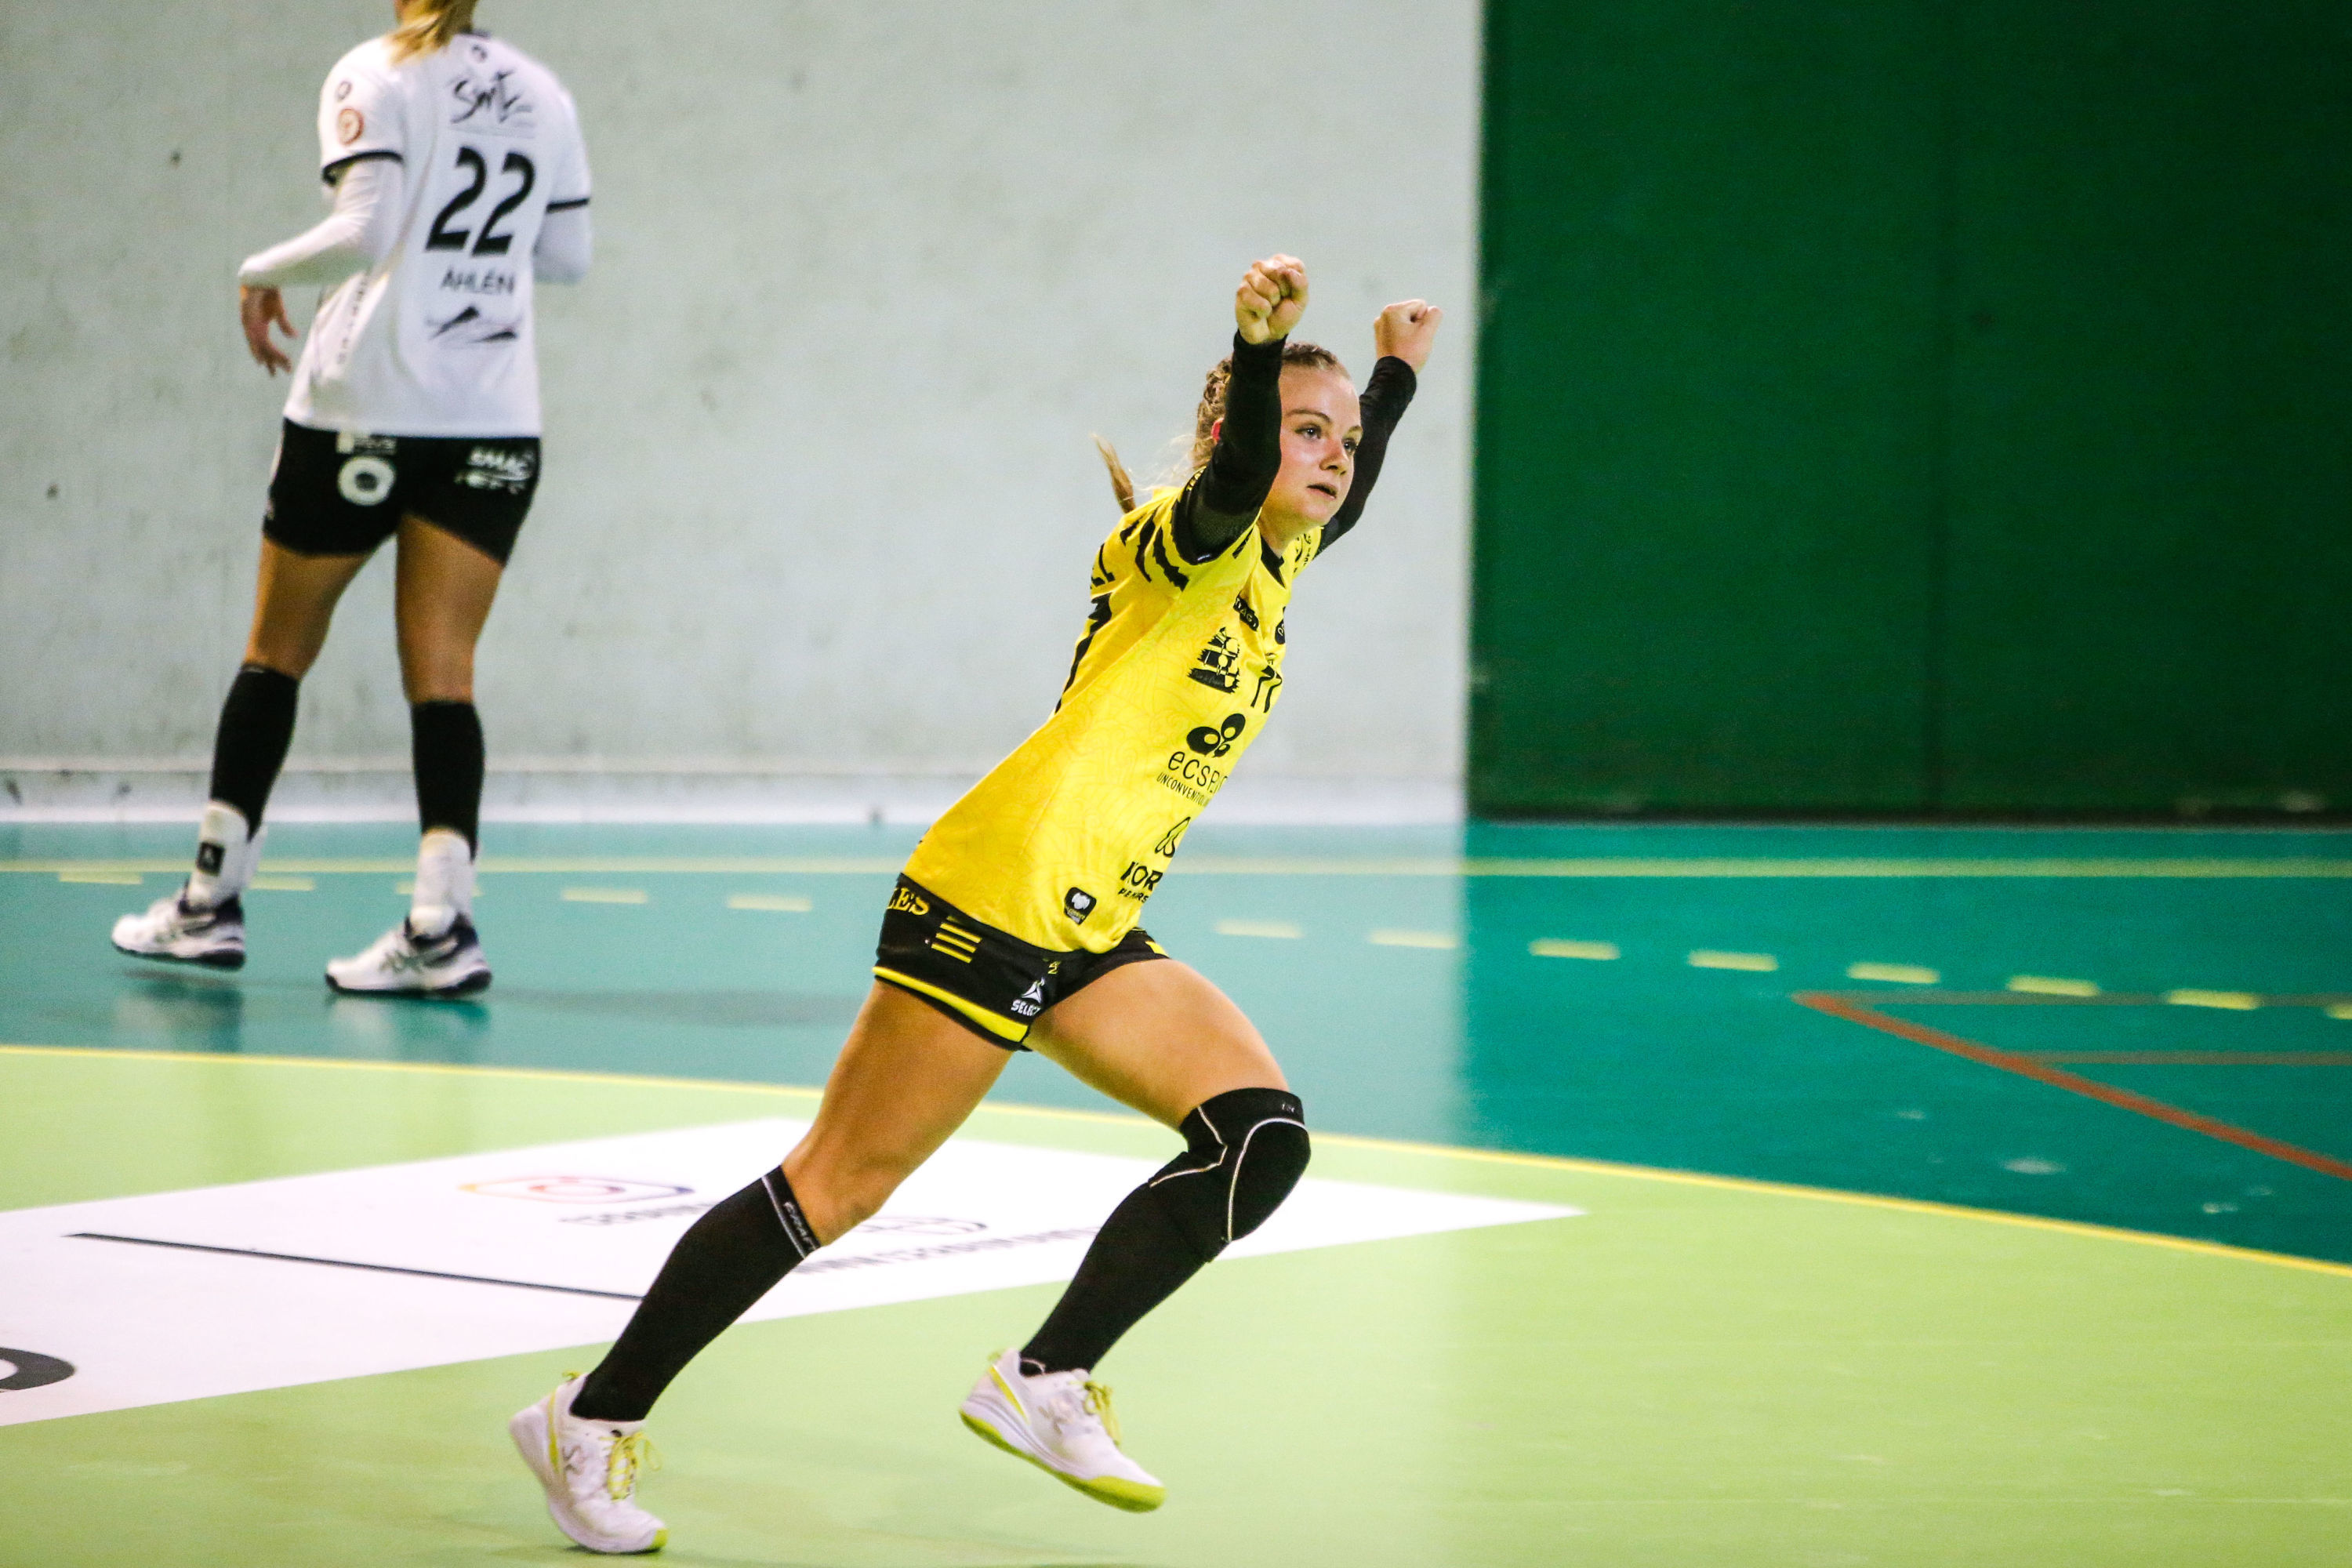 Justine MARTEL of Plan de Cuques celebrate during the Ligue Butagaz Energie match between Plan de Cuques and Celle-sur-Belle on October 2, 2021 in Marseille, France. (Photo by Johnny Fidelin/Icon Sport)